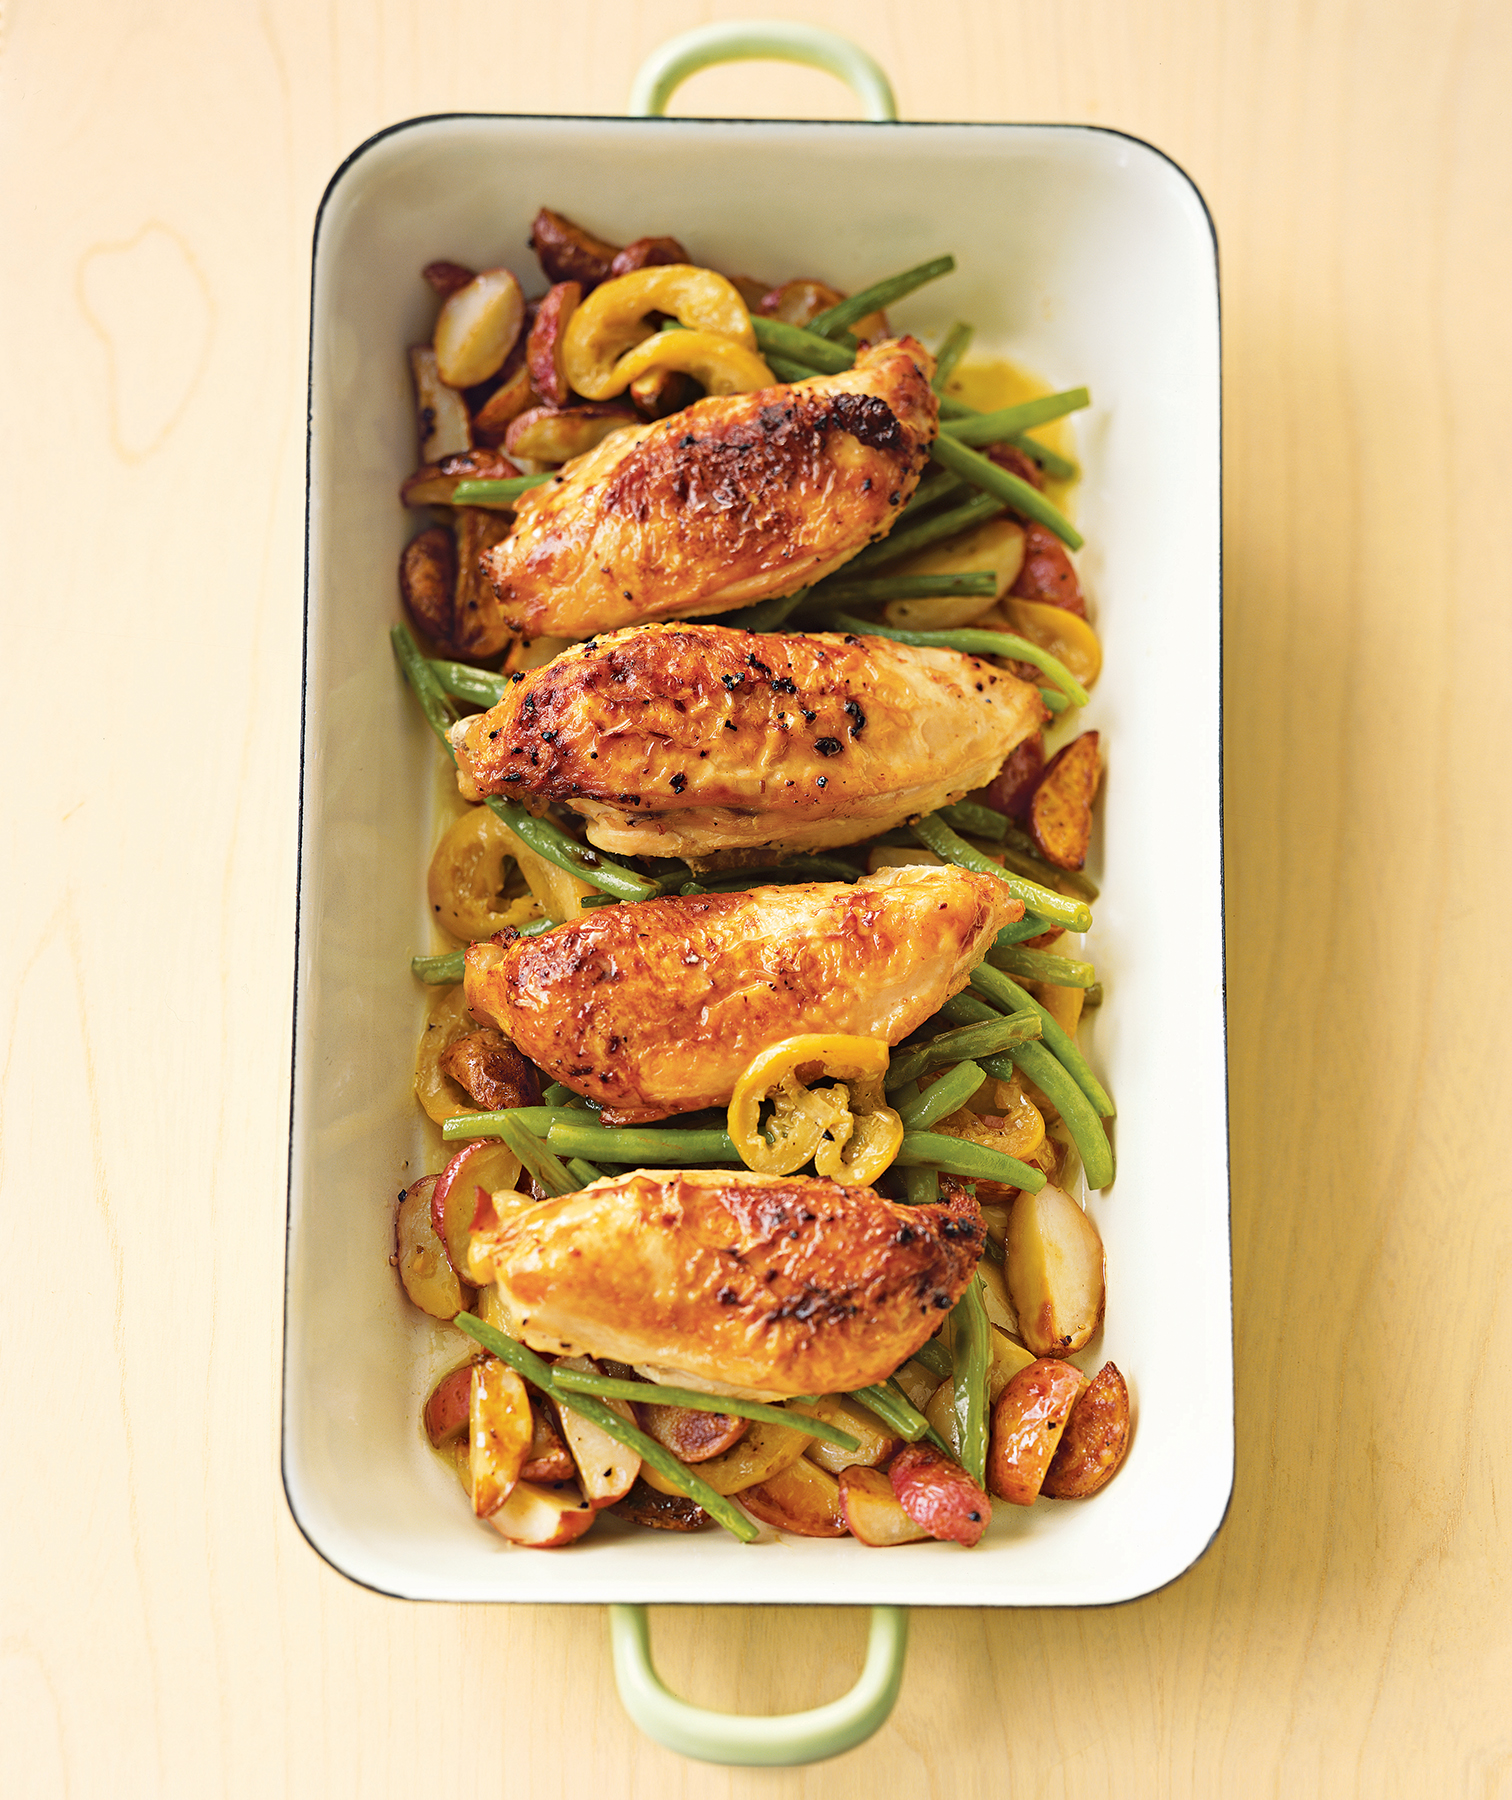 Pan roasted chicken with lemon garlic green beans recipe real simple forumfinder Images